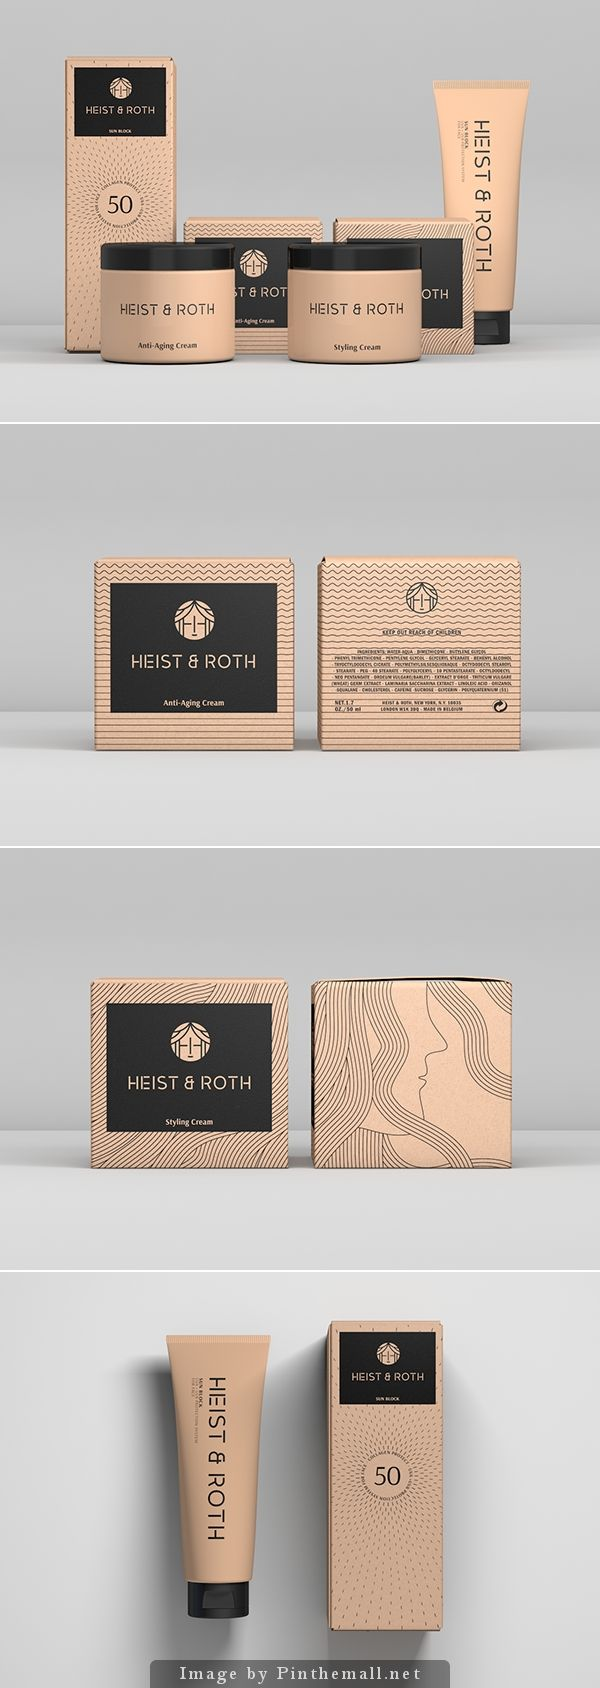 Heist & Roth - skin care and beauty products